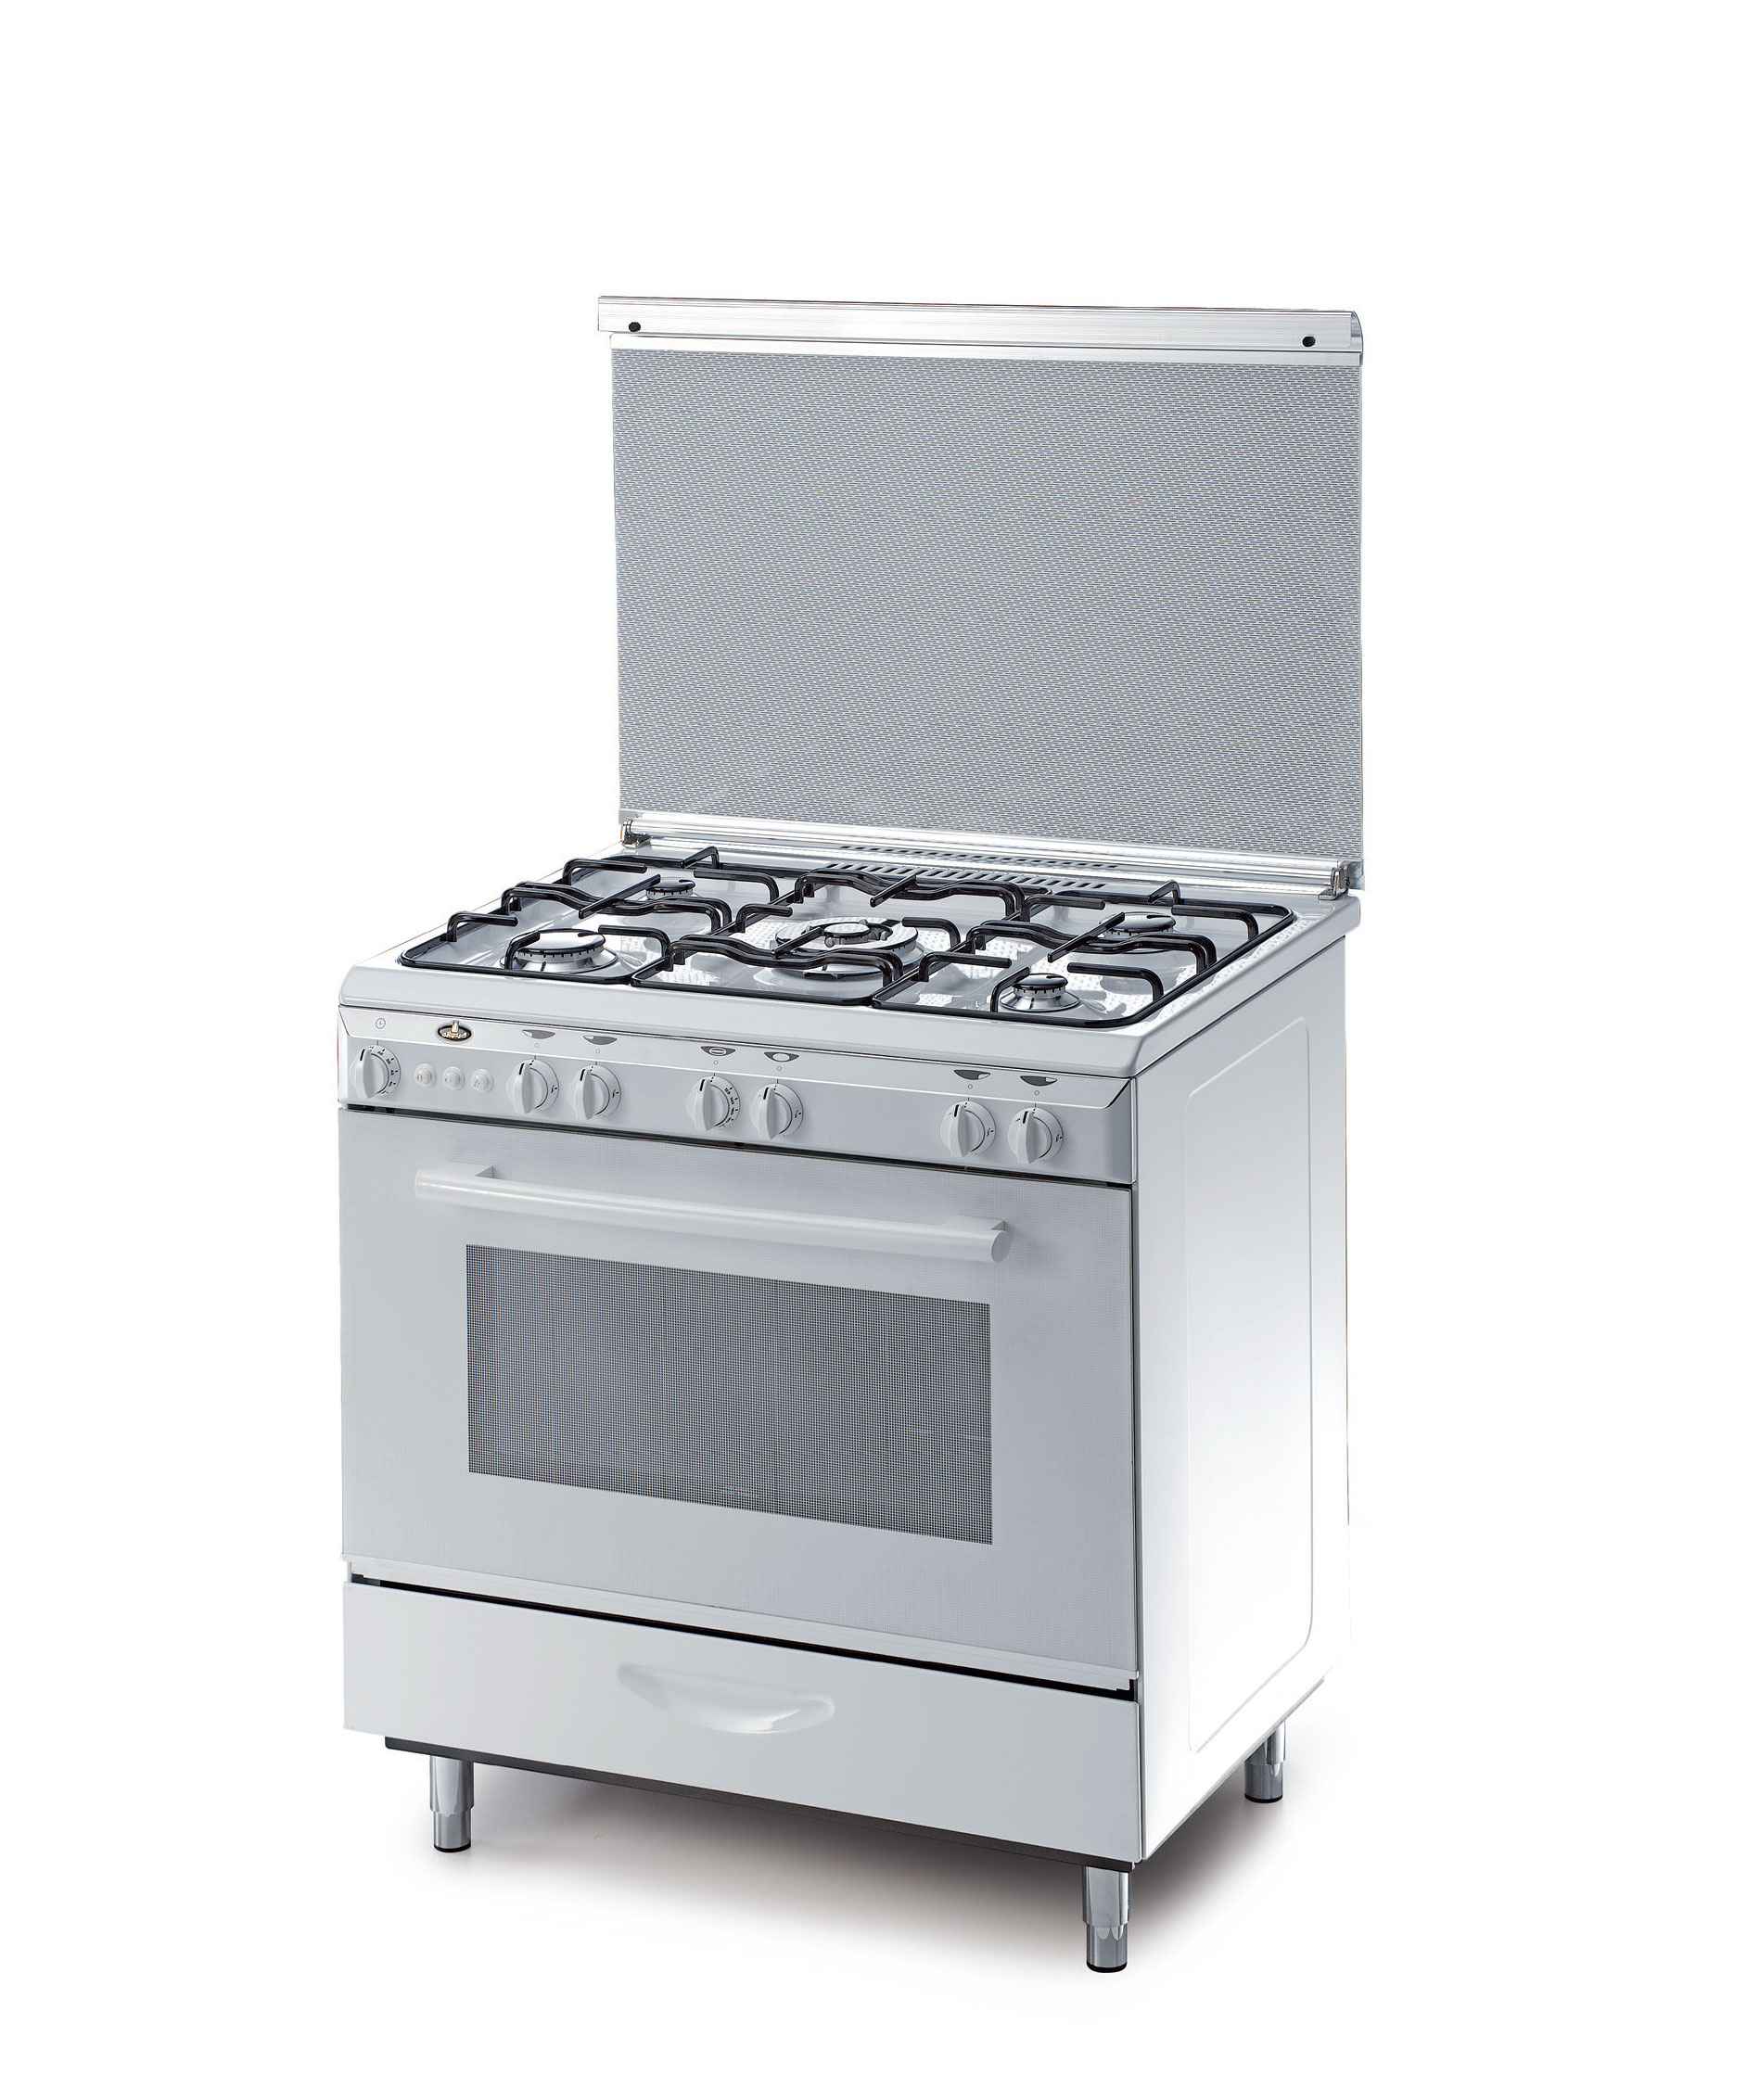 Cookers kiriazi 5